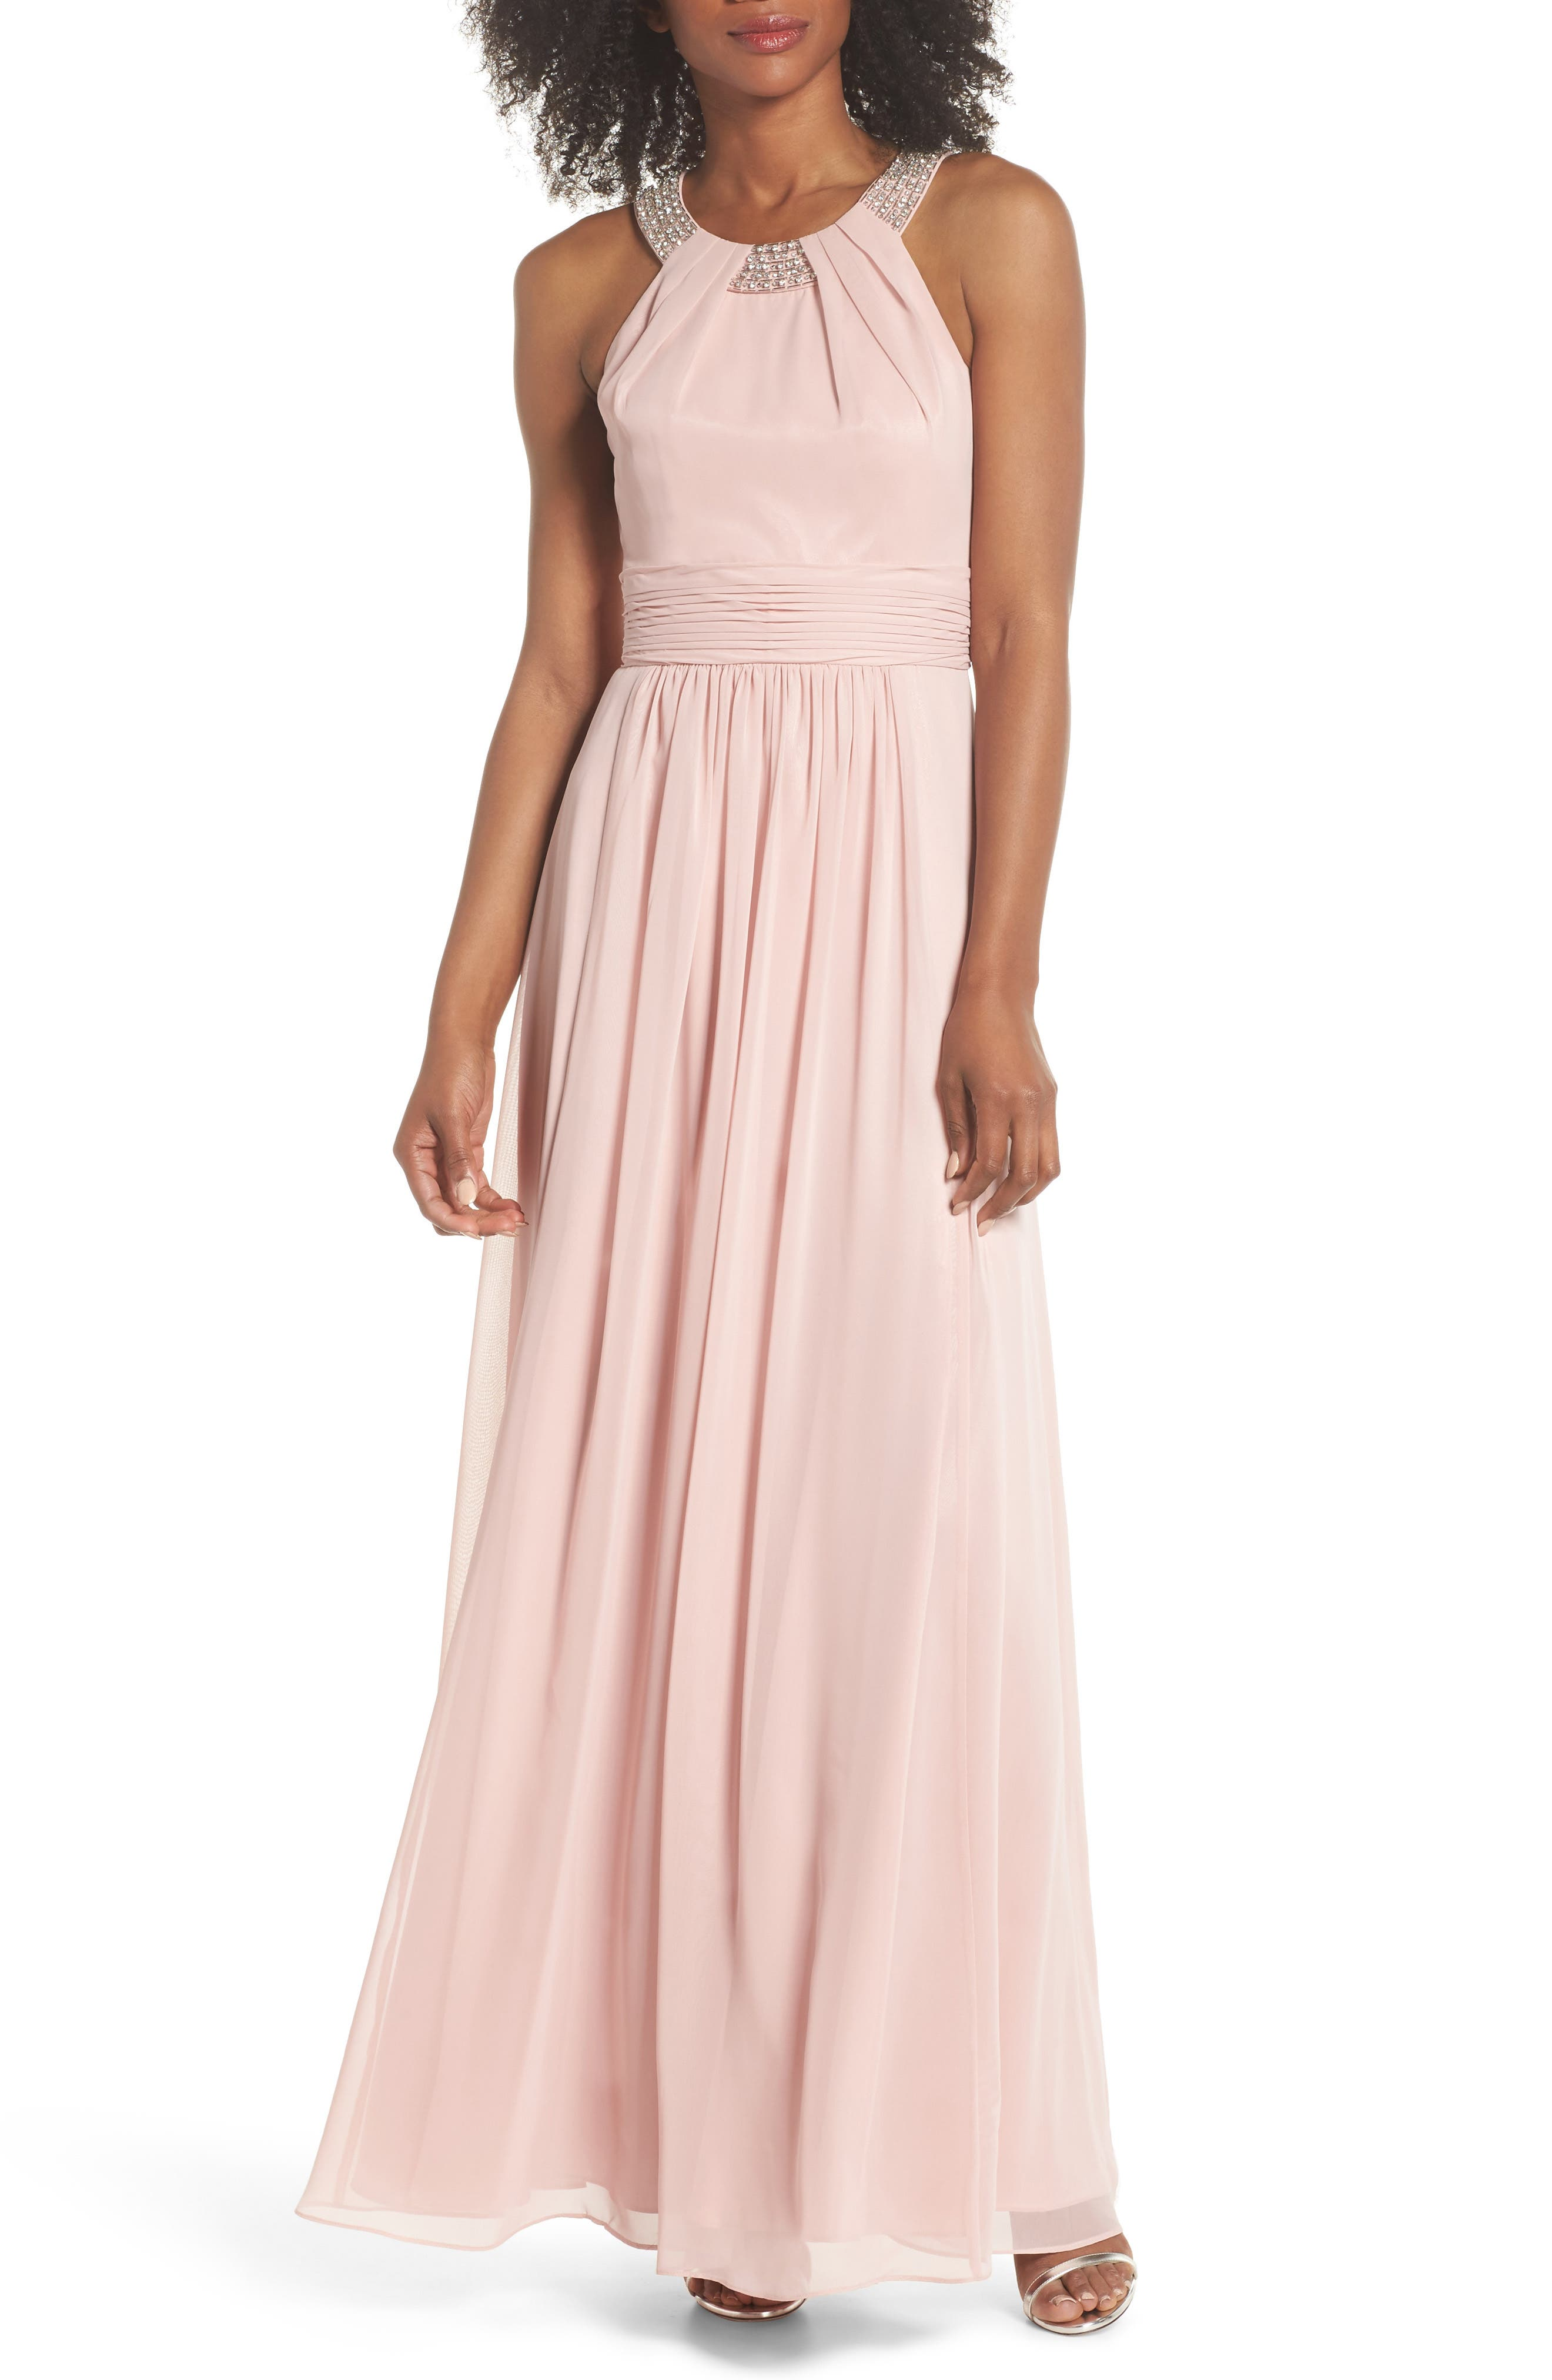 Beaded Halter Gown,                             Main thumbnail 1, color,                             684